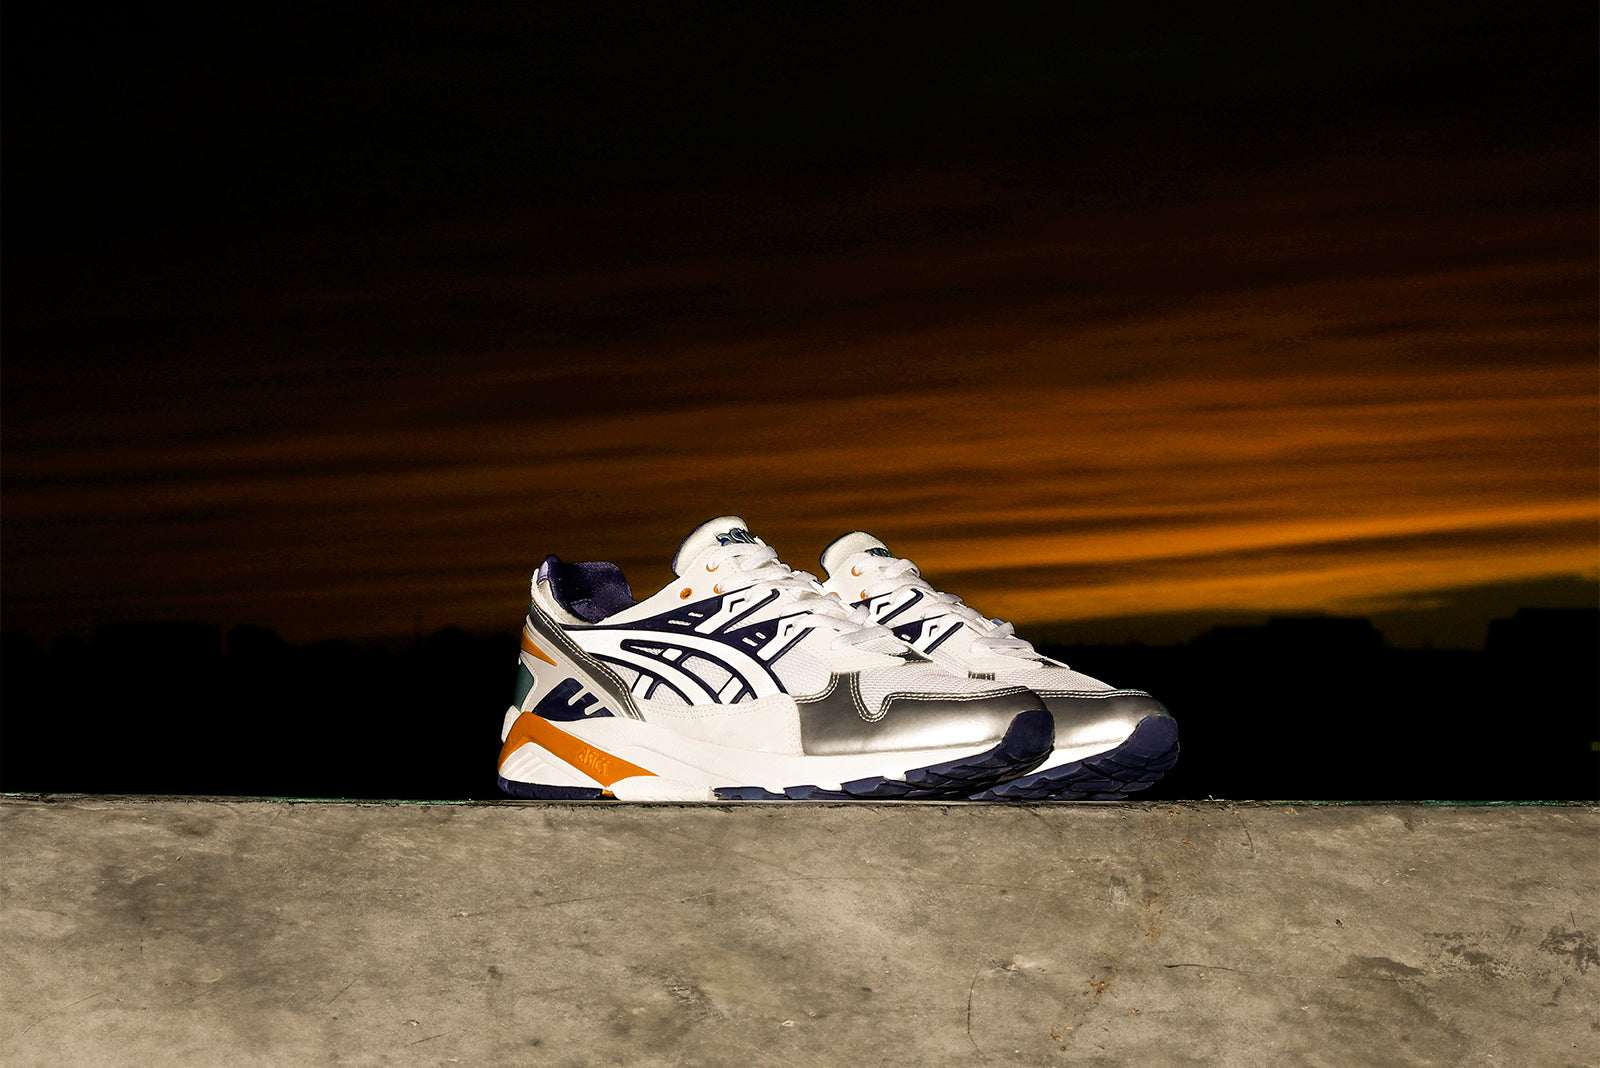 3fa40fc0 The Asics Gel-Kayano x Naked launches on Thursday the 27th of September  ONLINE; 23:00BST.